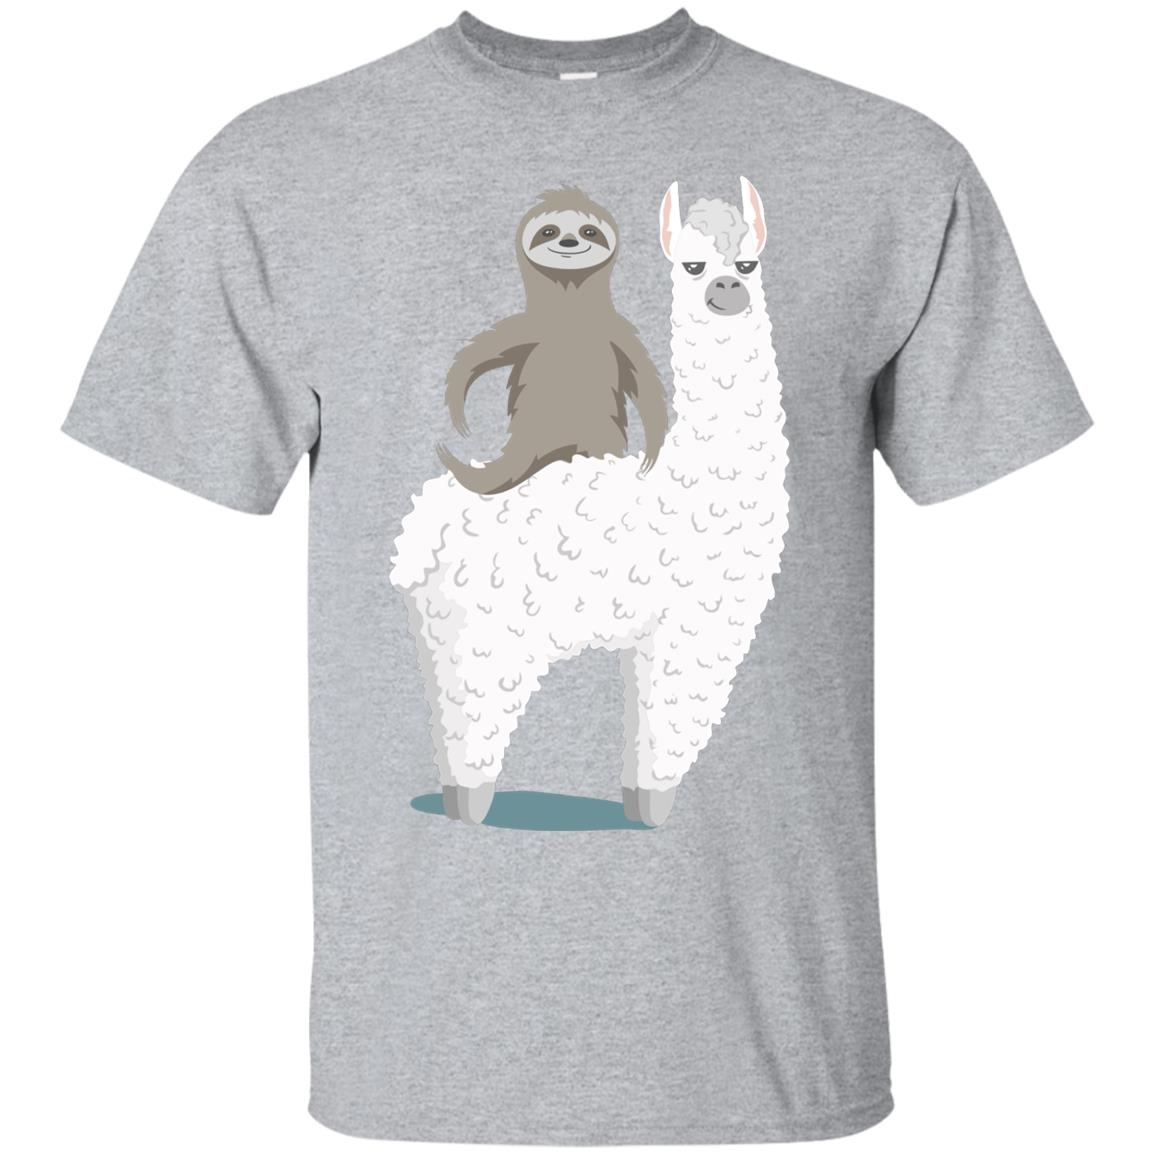 Sloth riding llama Funny T-shirt 99promocode